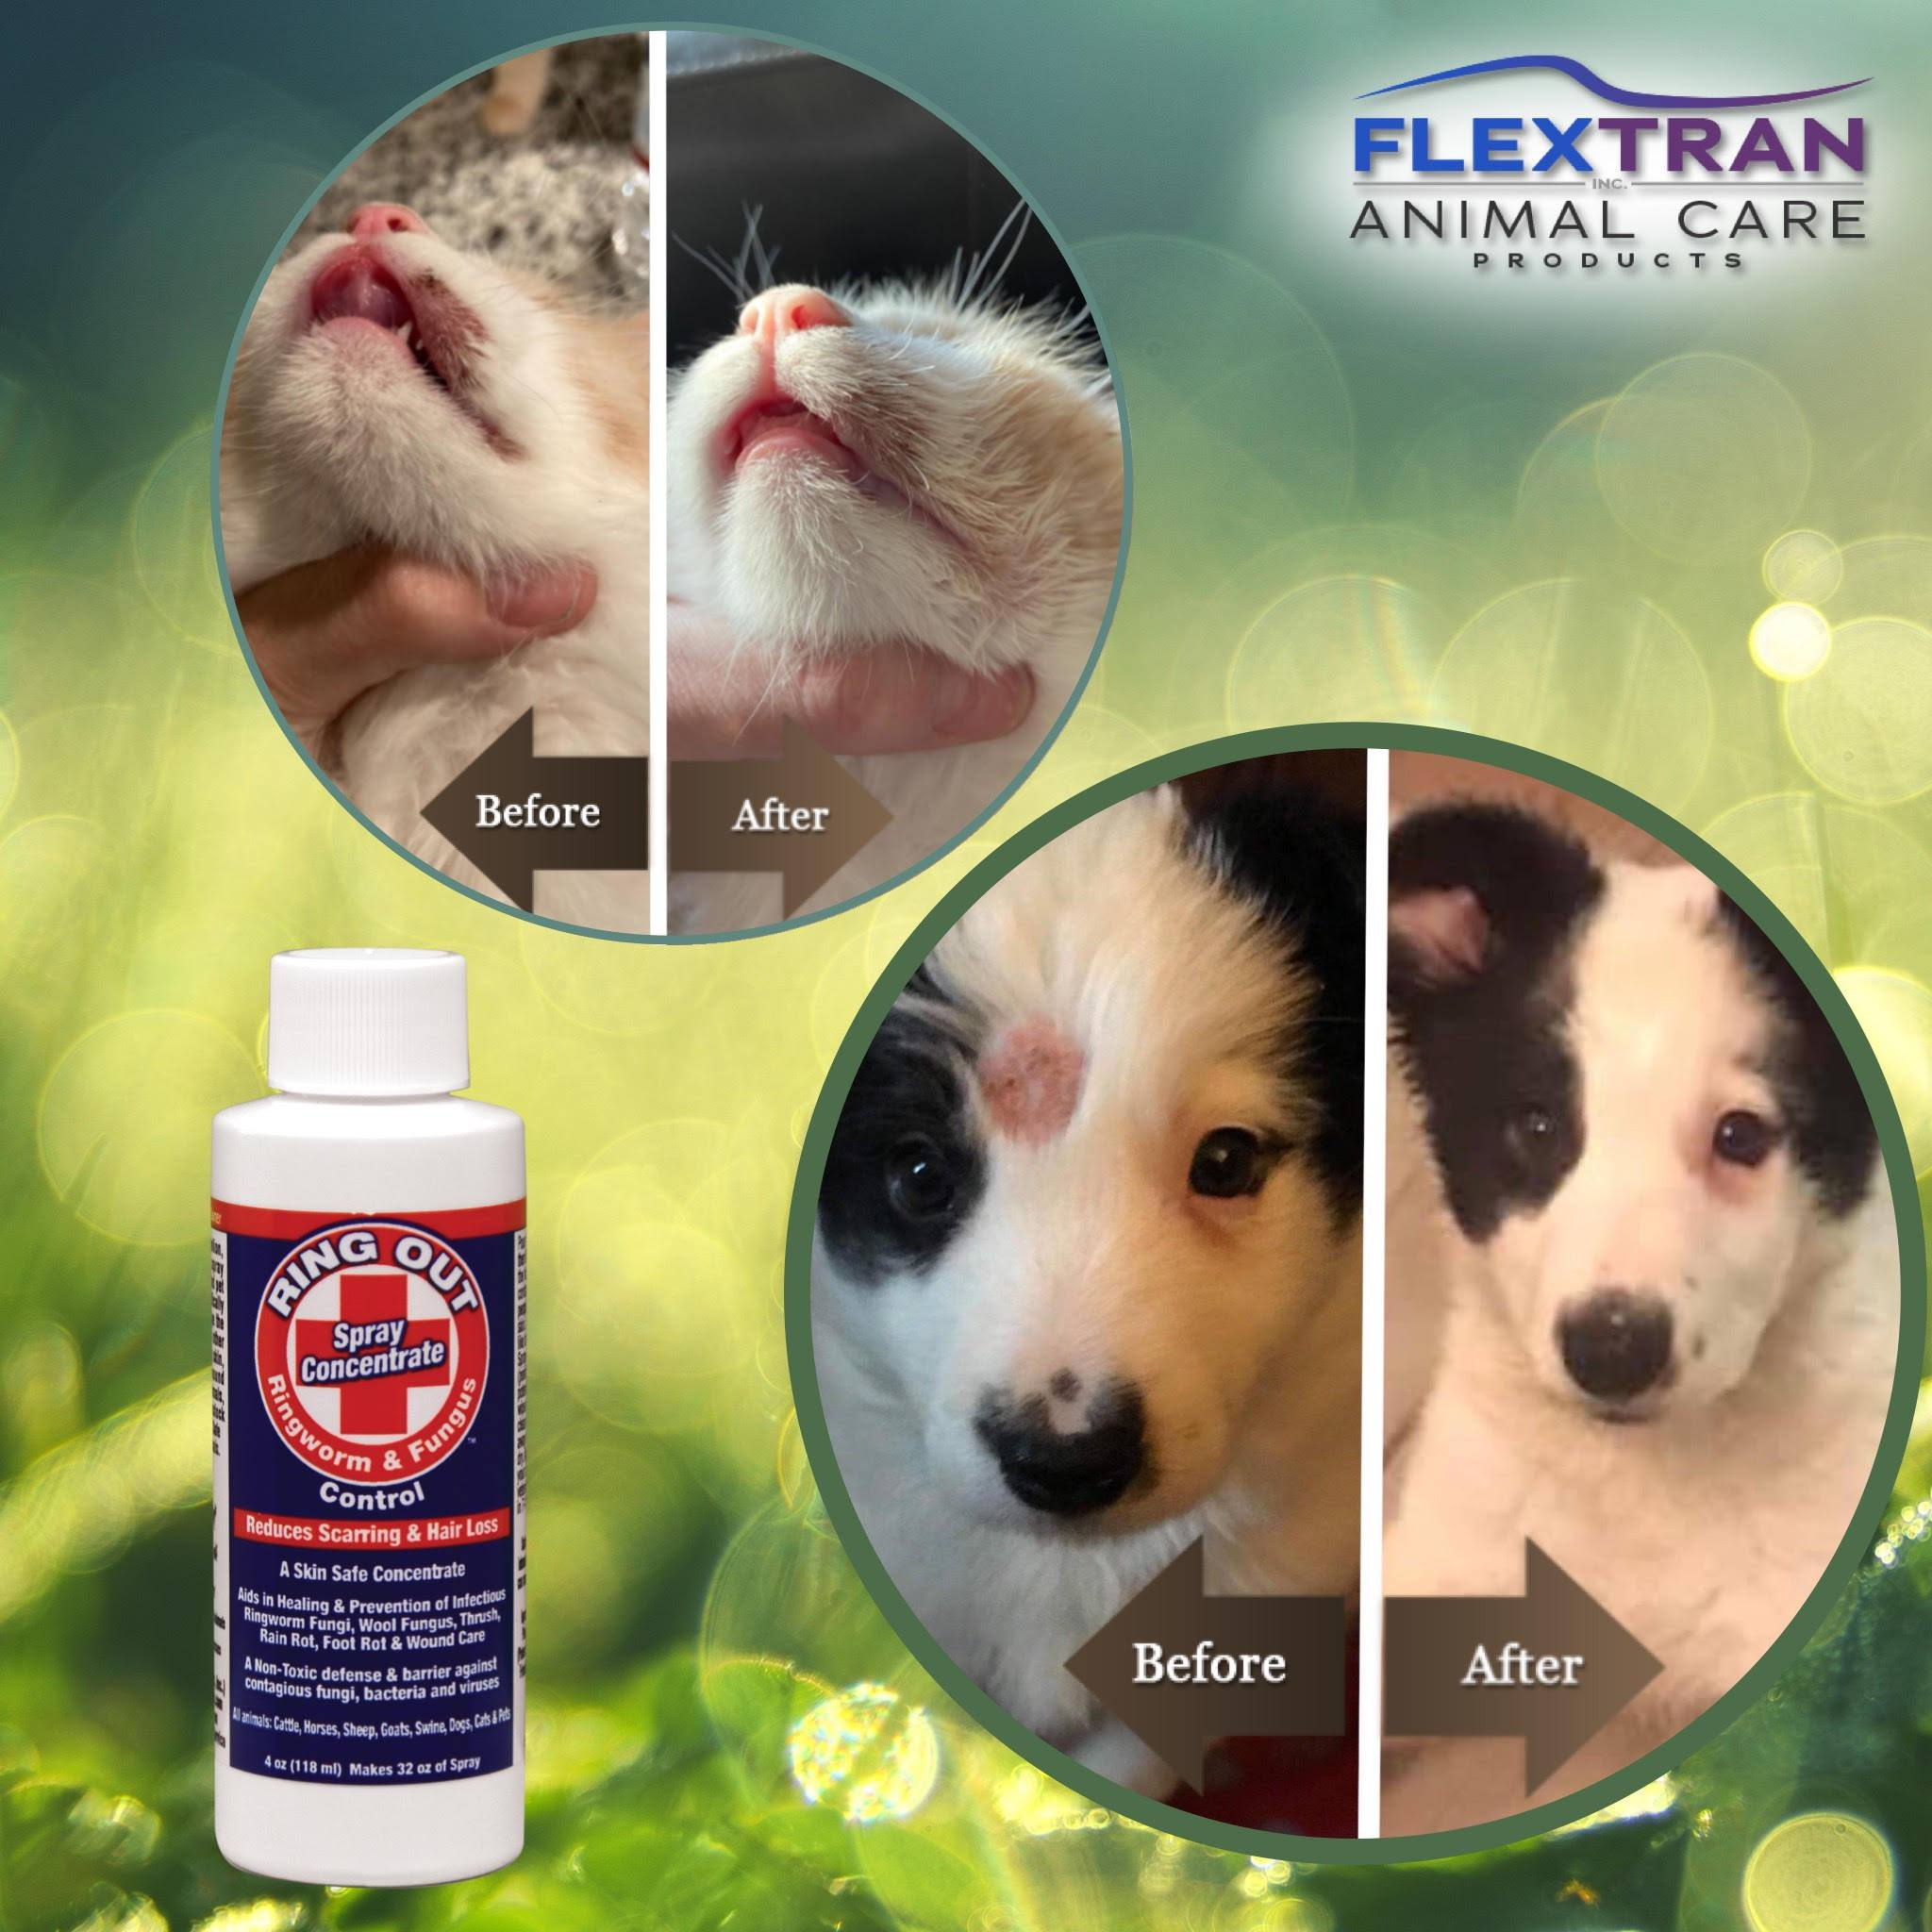 Ring Out Shampoo & Soap - Help Control Ringworm & Fungus in ALL Animals & Livestock